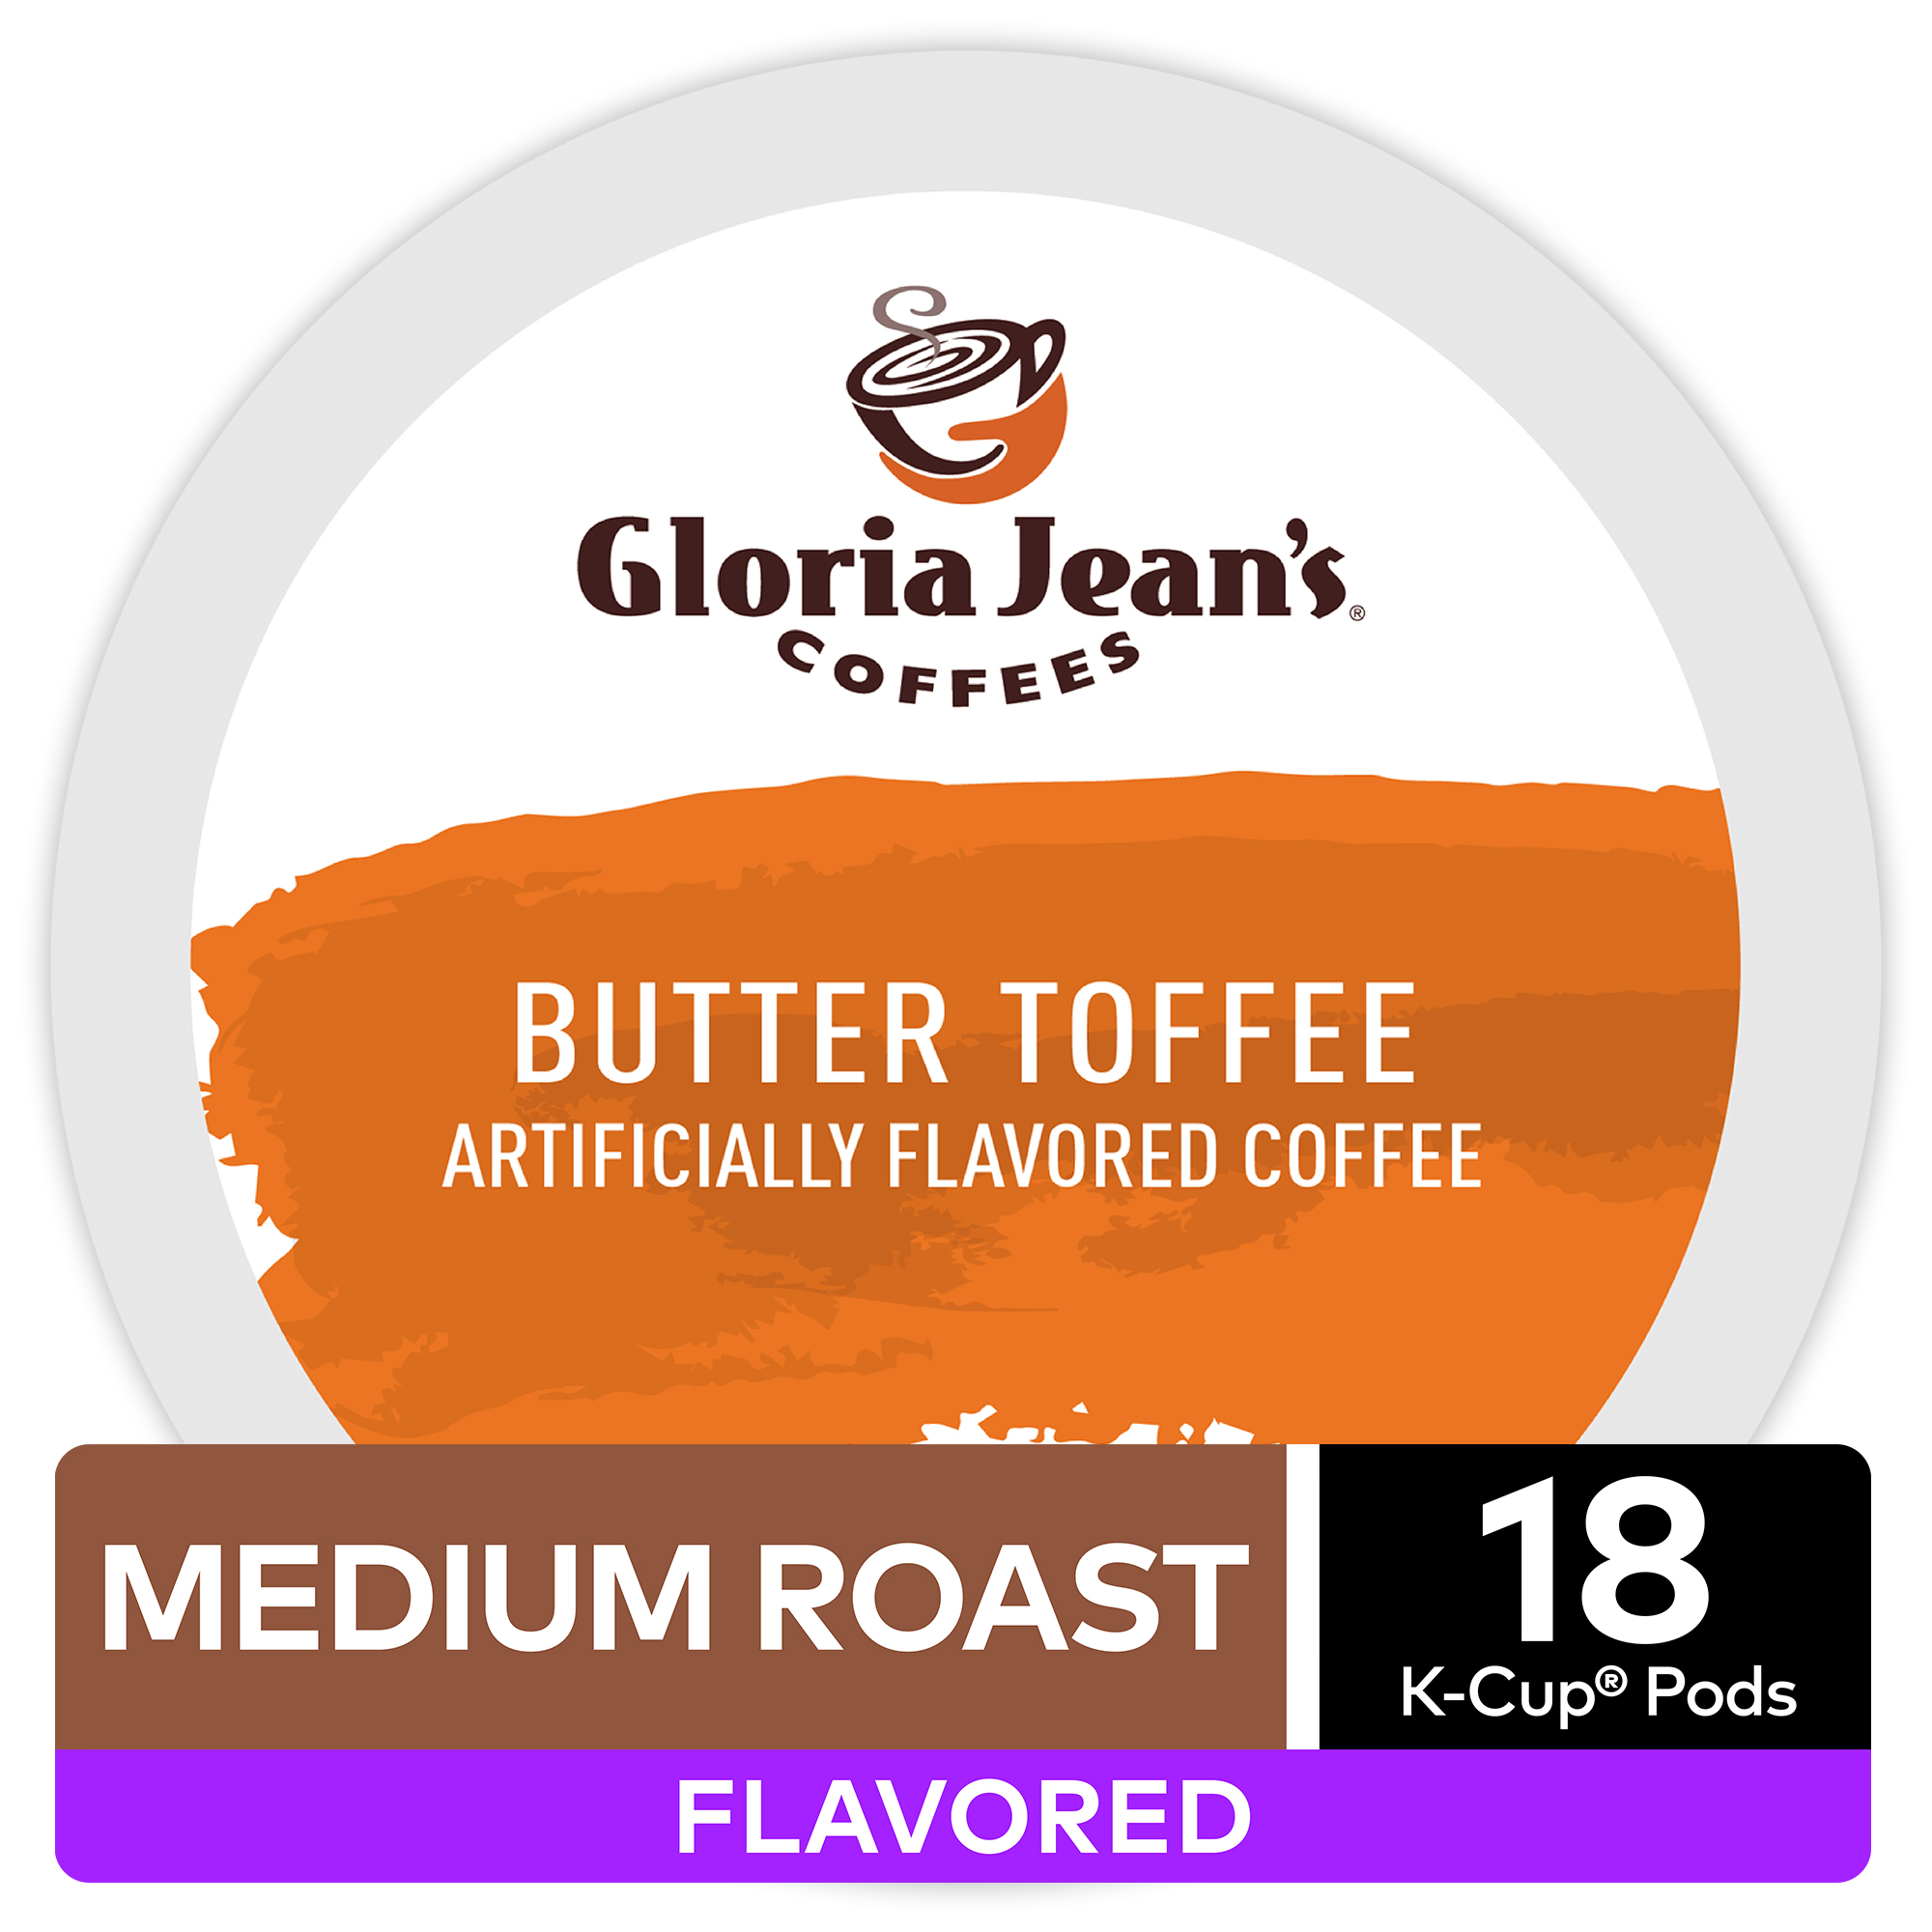 Gloria Jeans Butter Toffee Flavored Coffee, Keurig K-Cup Pods, Light Roast, 18 Count